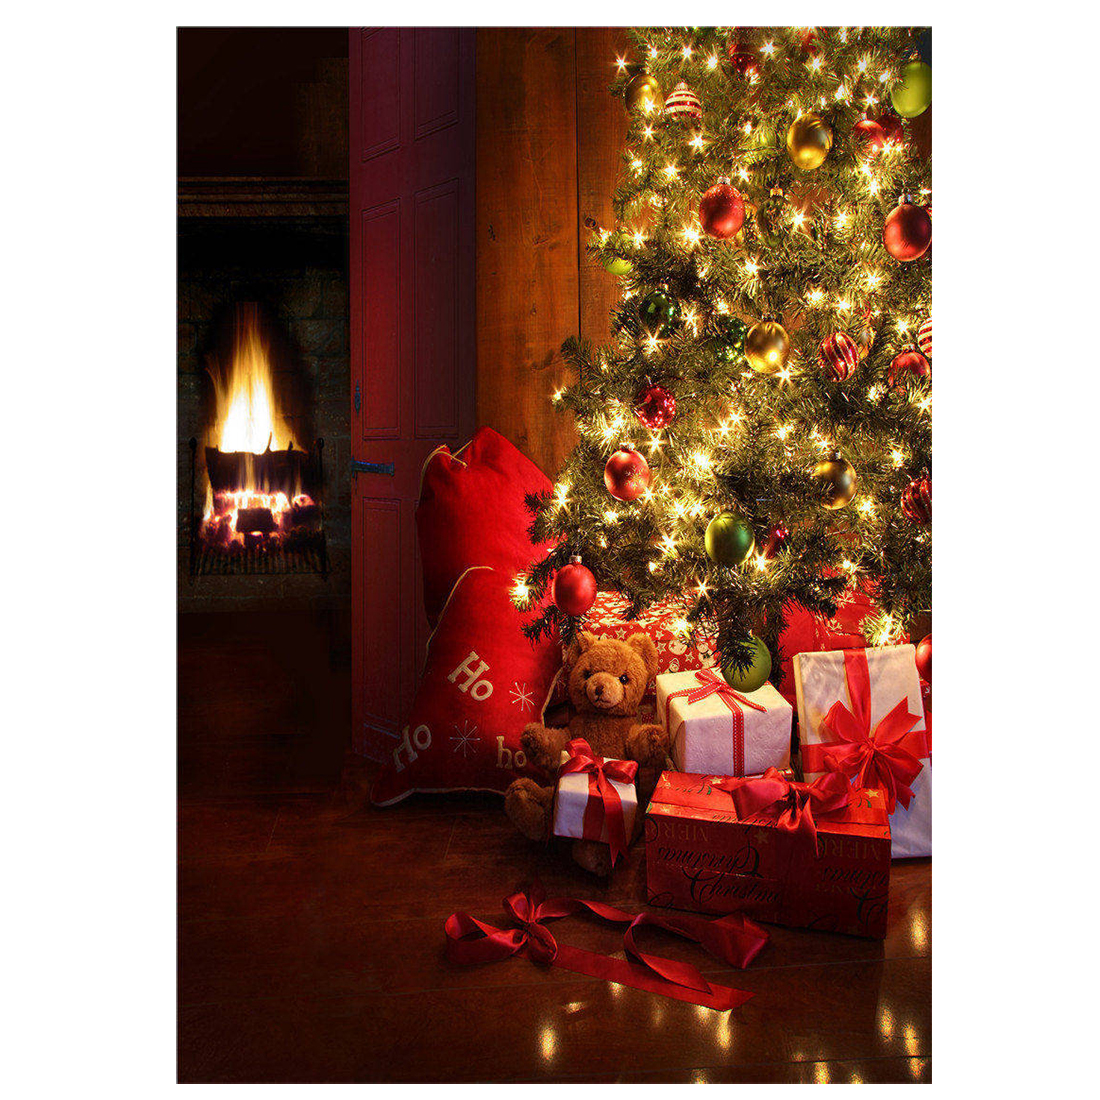 Photography Backdrops Christmas Tree Children Photo Props Background Vinyl 5x7FT shengyongbao 300cm 200cm vinyl custom photography backdrops brick wall theme photo studio props photography background brw 12